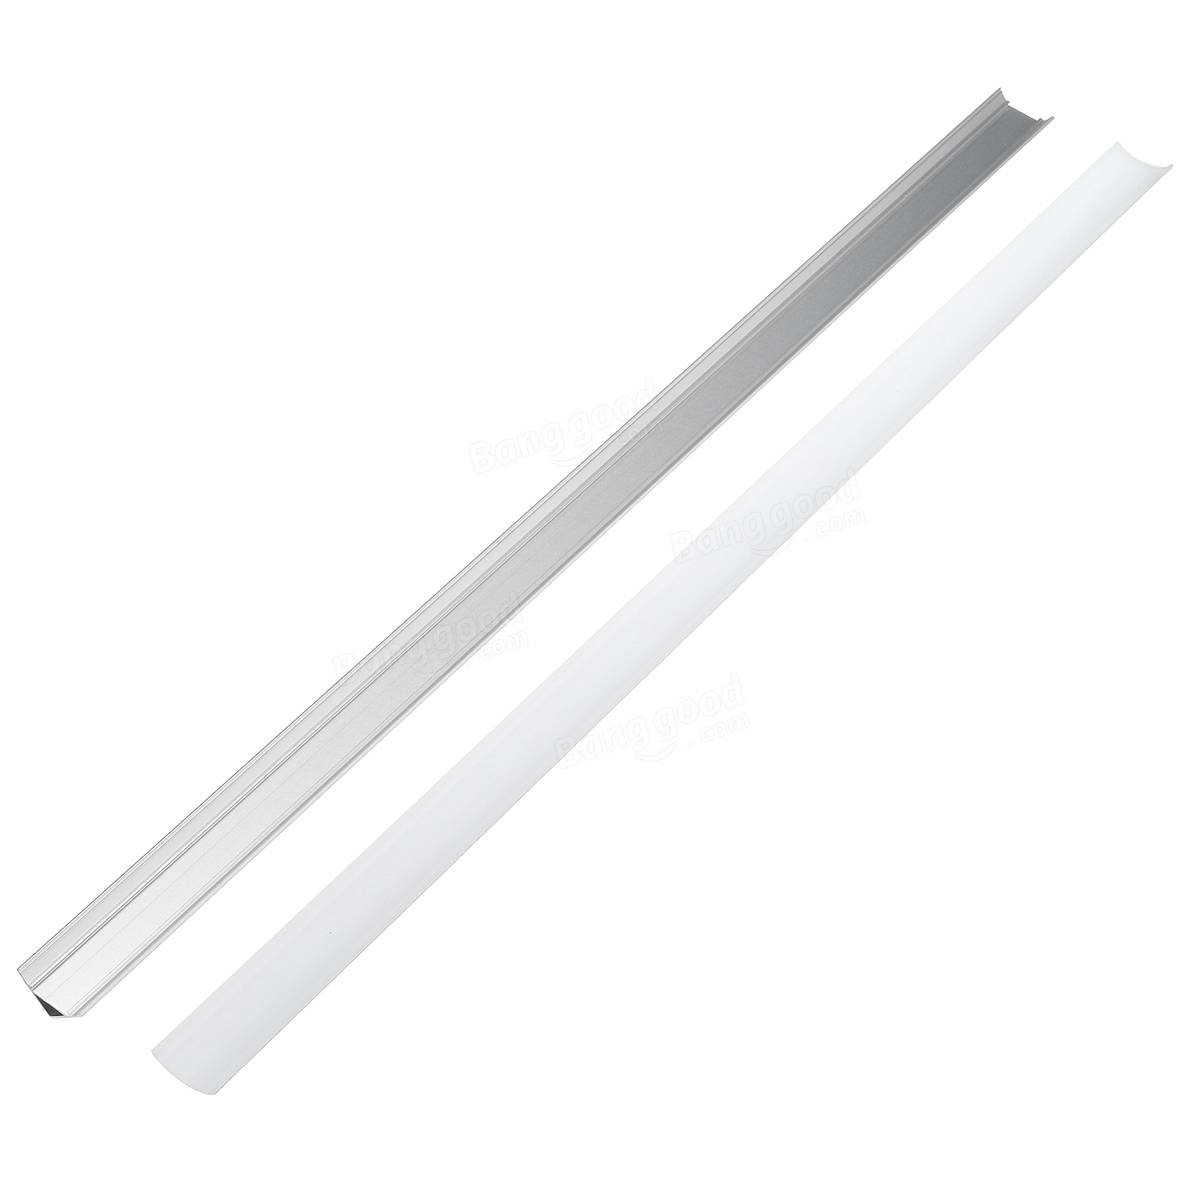 YW Style Aluminum Strip Holder For LED Rigid Strip Light